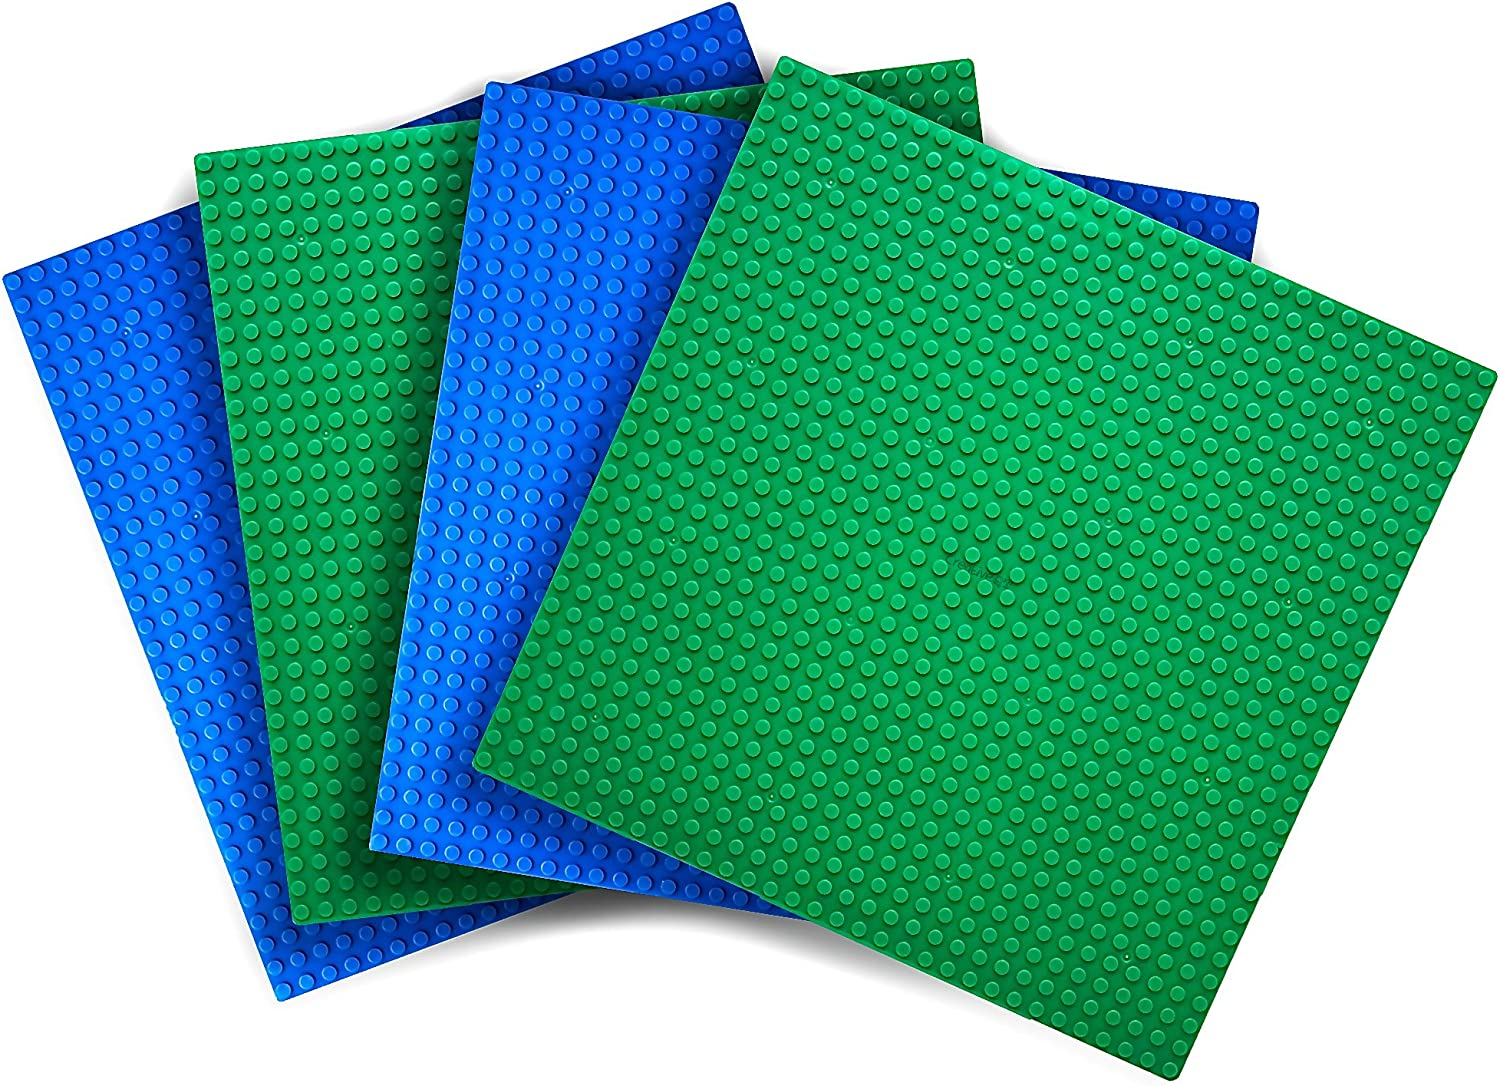 LEGO Lot of 10 Blue 1x10 Plates